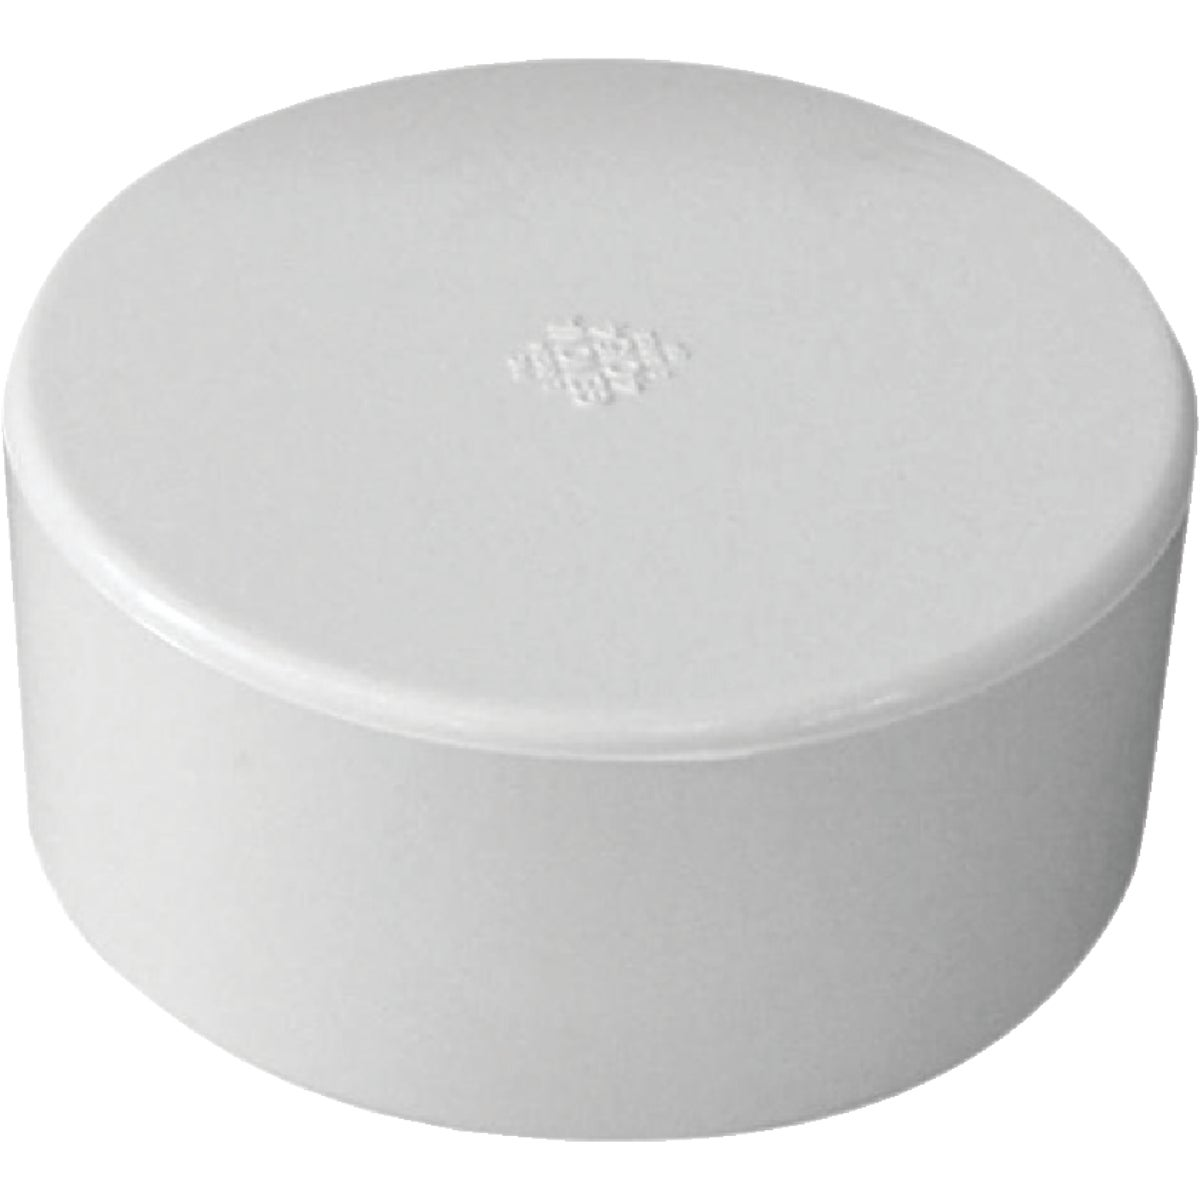 "3"" S/D PVC CAP - 40153 by Genova Inc"